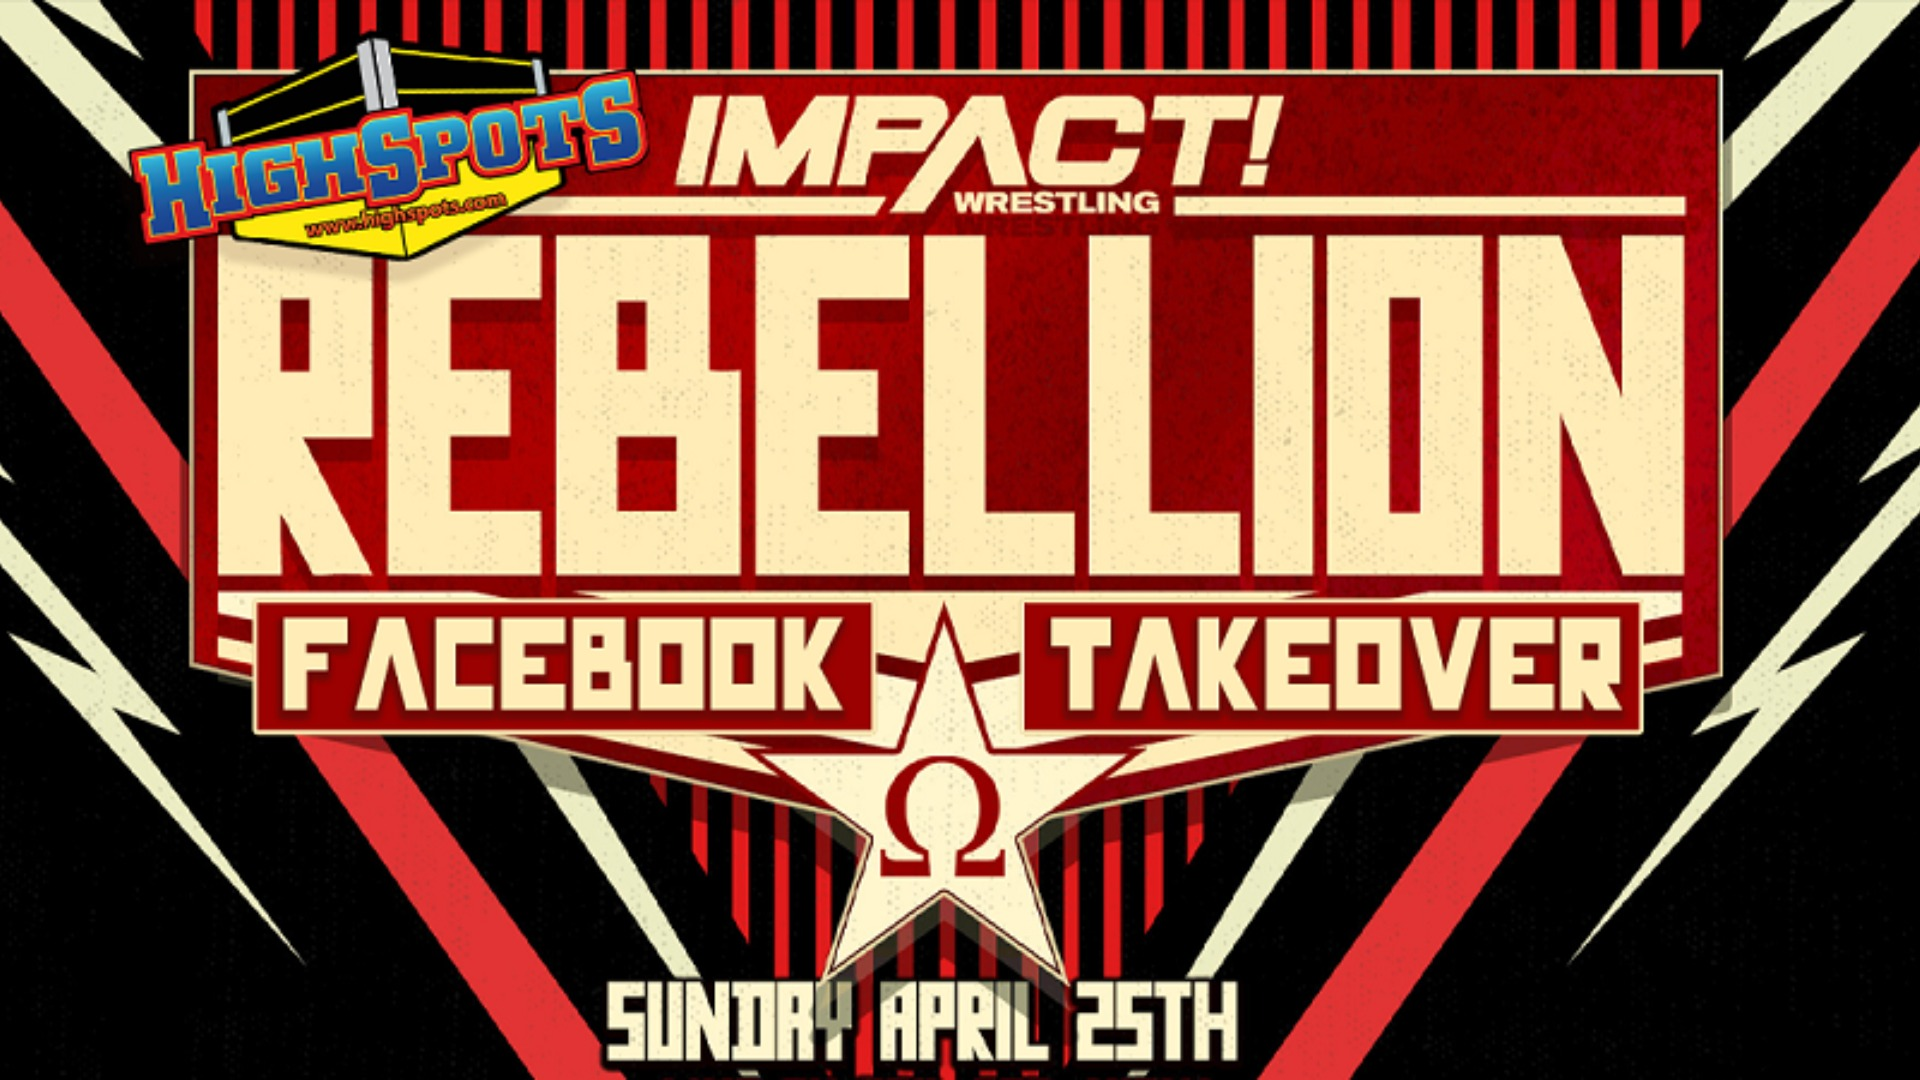 Don't Miss the Highspots Rebellion Facebook Takeover – IMPACT Wrestling